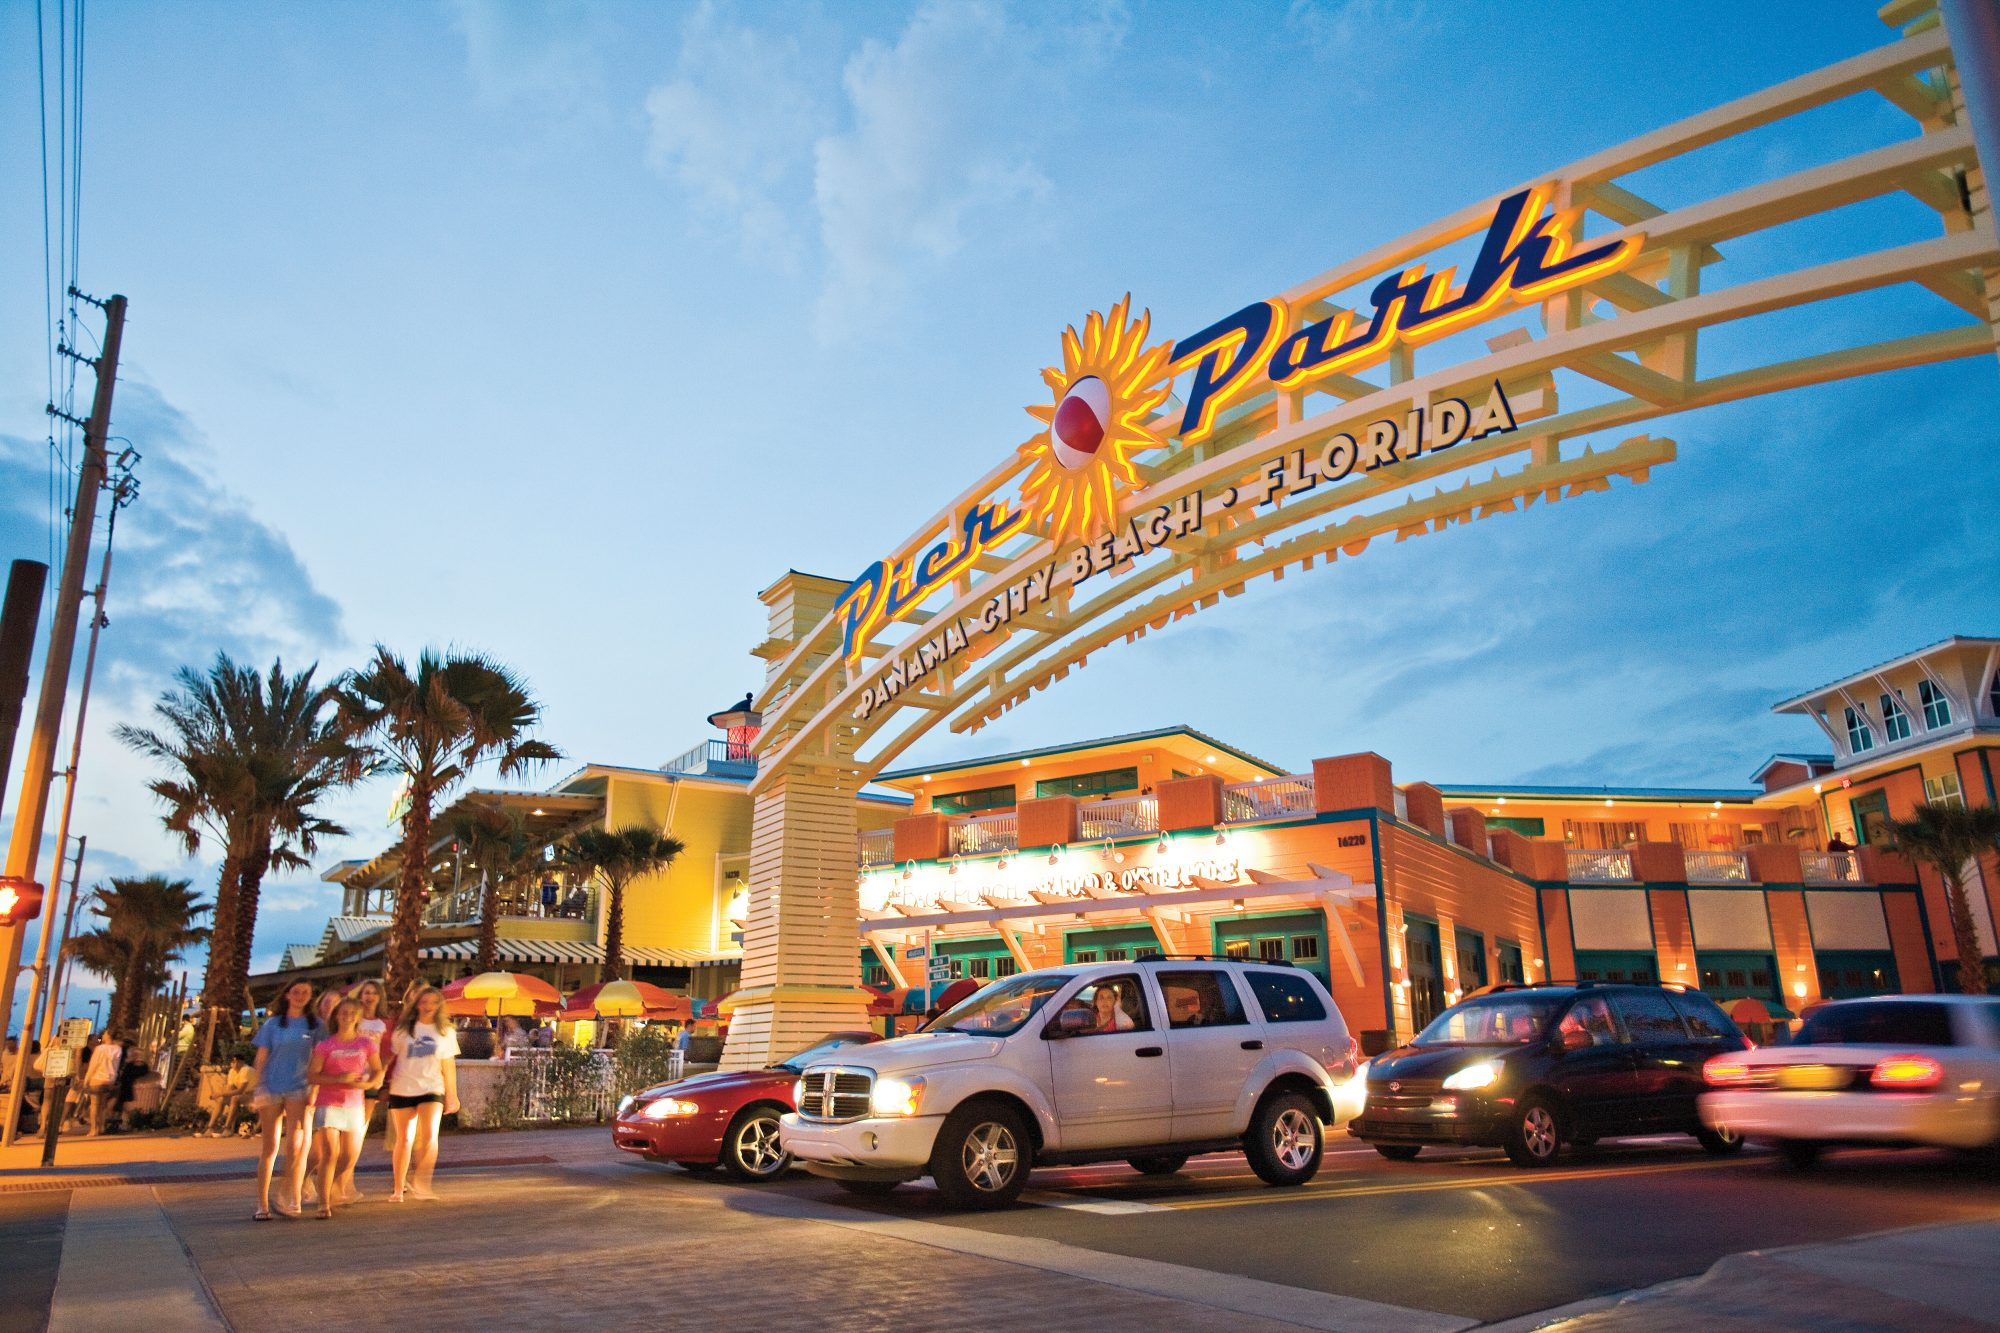 Panama City Beach Vacation: New Shopping District